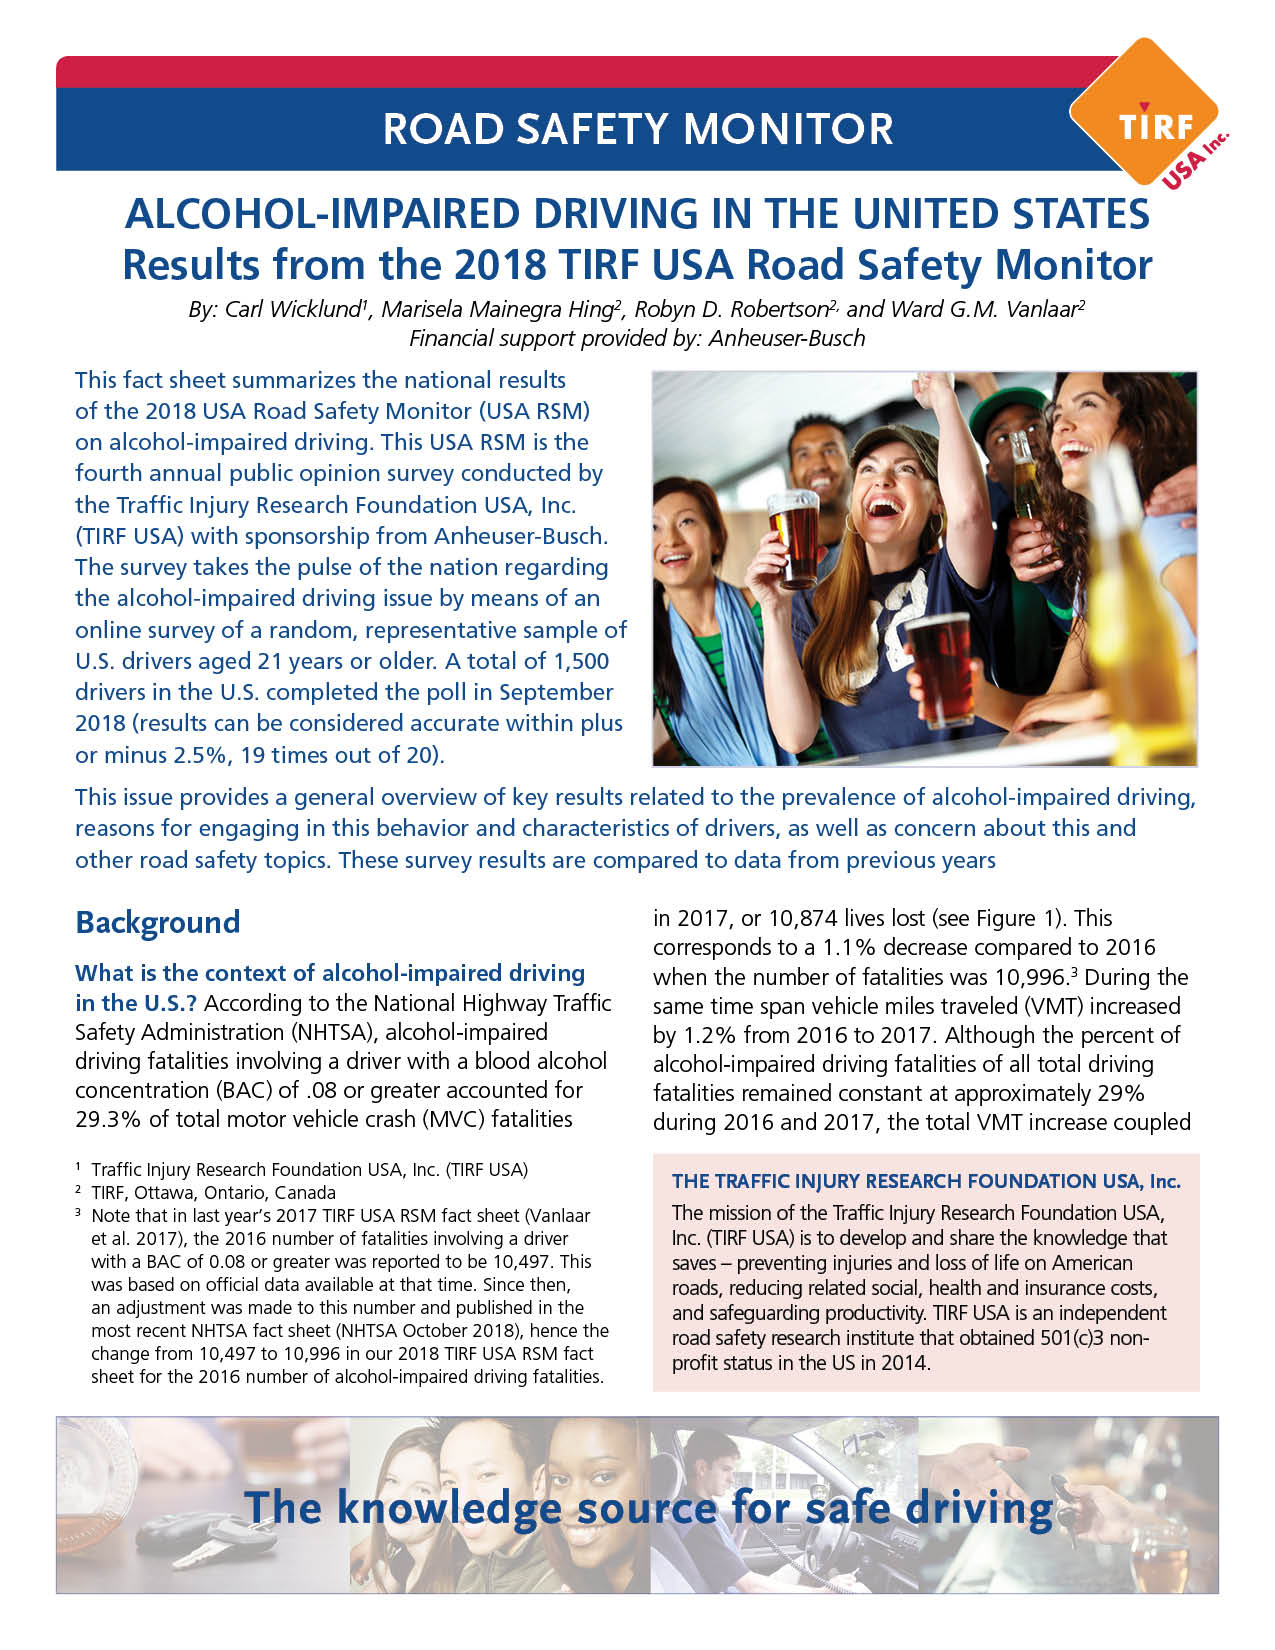 Road Safety Monitor: Alcohol-Impaired Driving in the United States, 2018